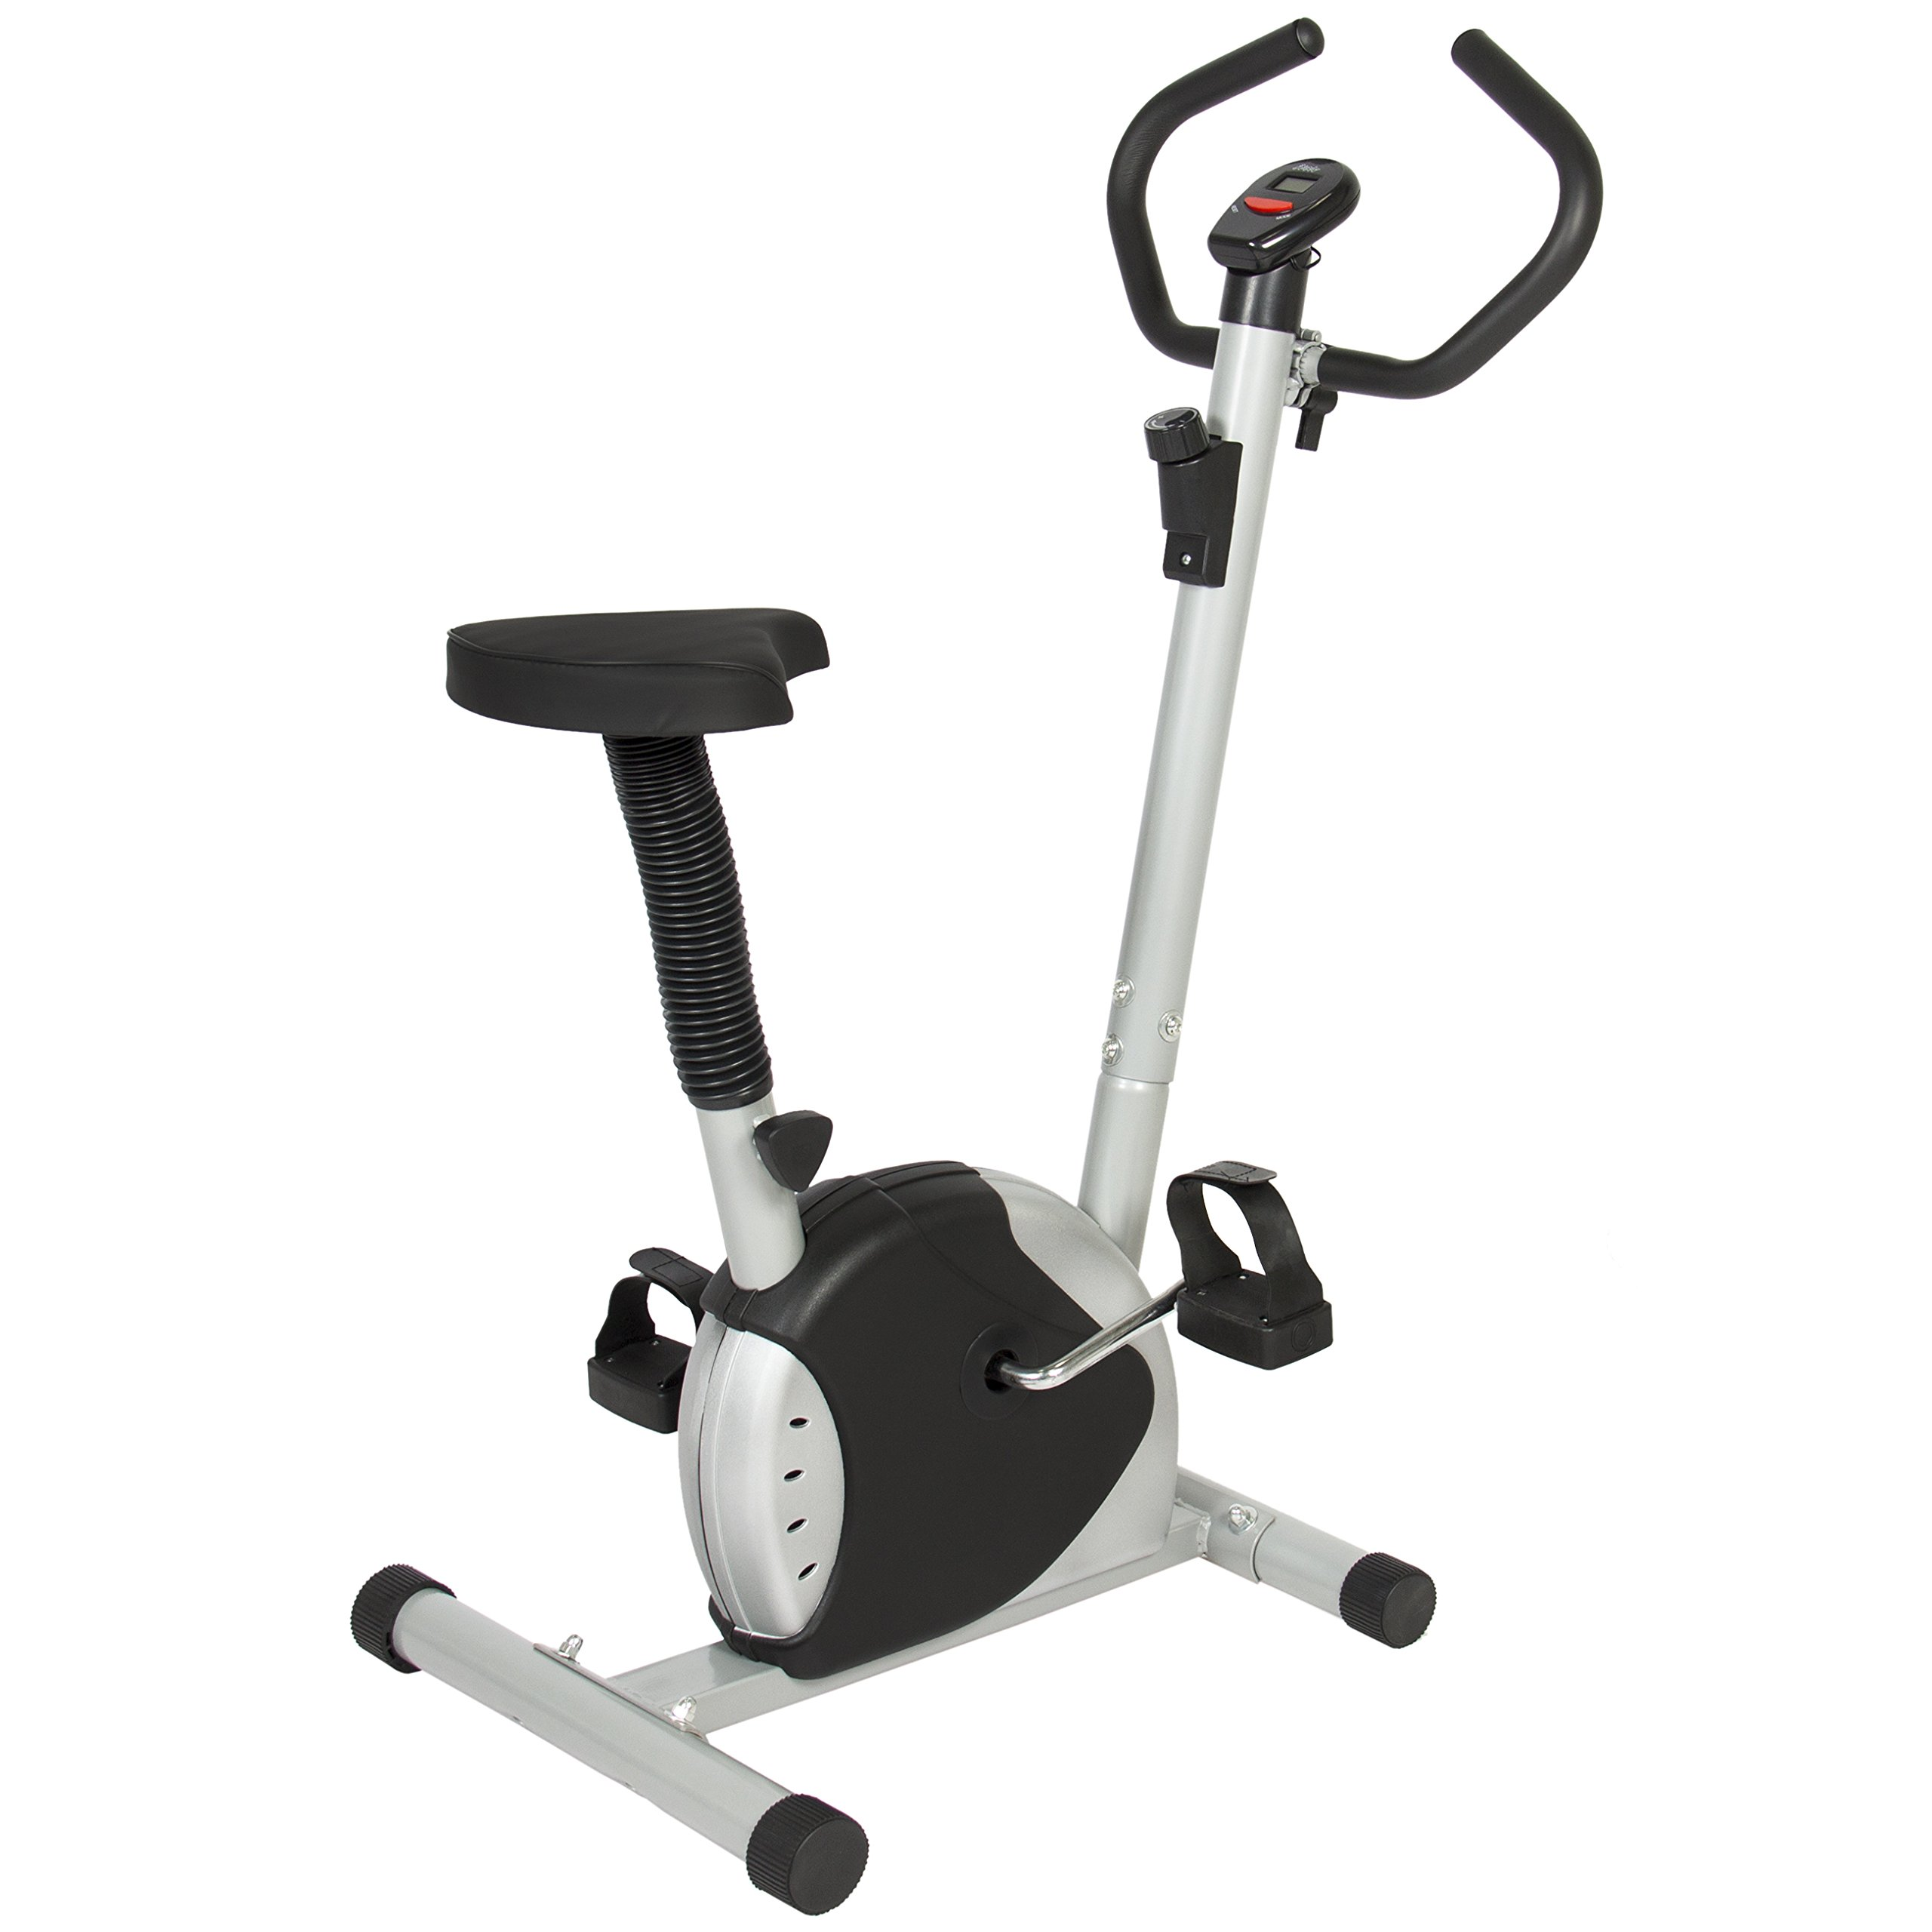 Best Choice Products Adjustable Exercise Bicycle Machine w/ Resistance Adjustment - Black/Silver